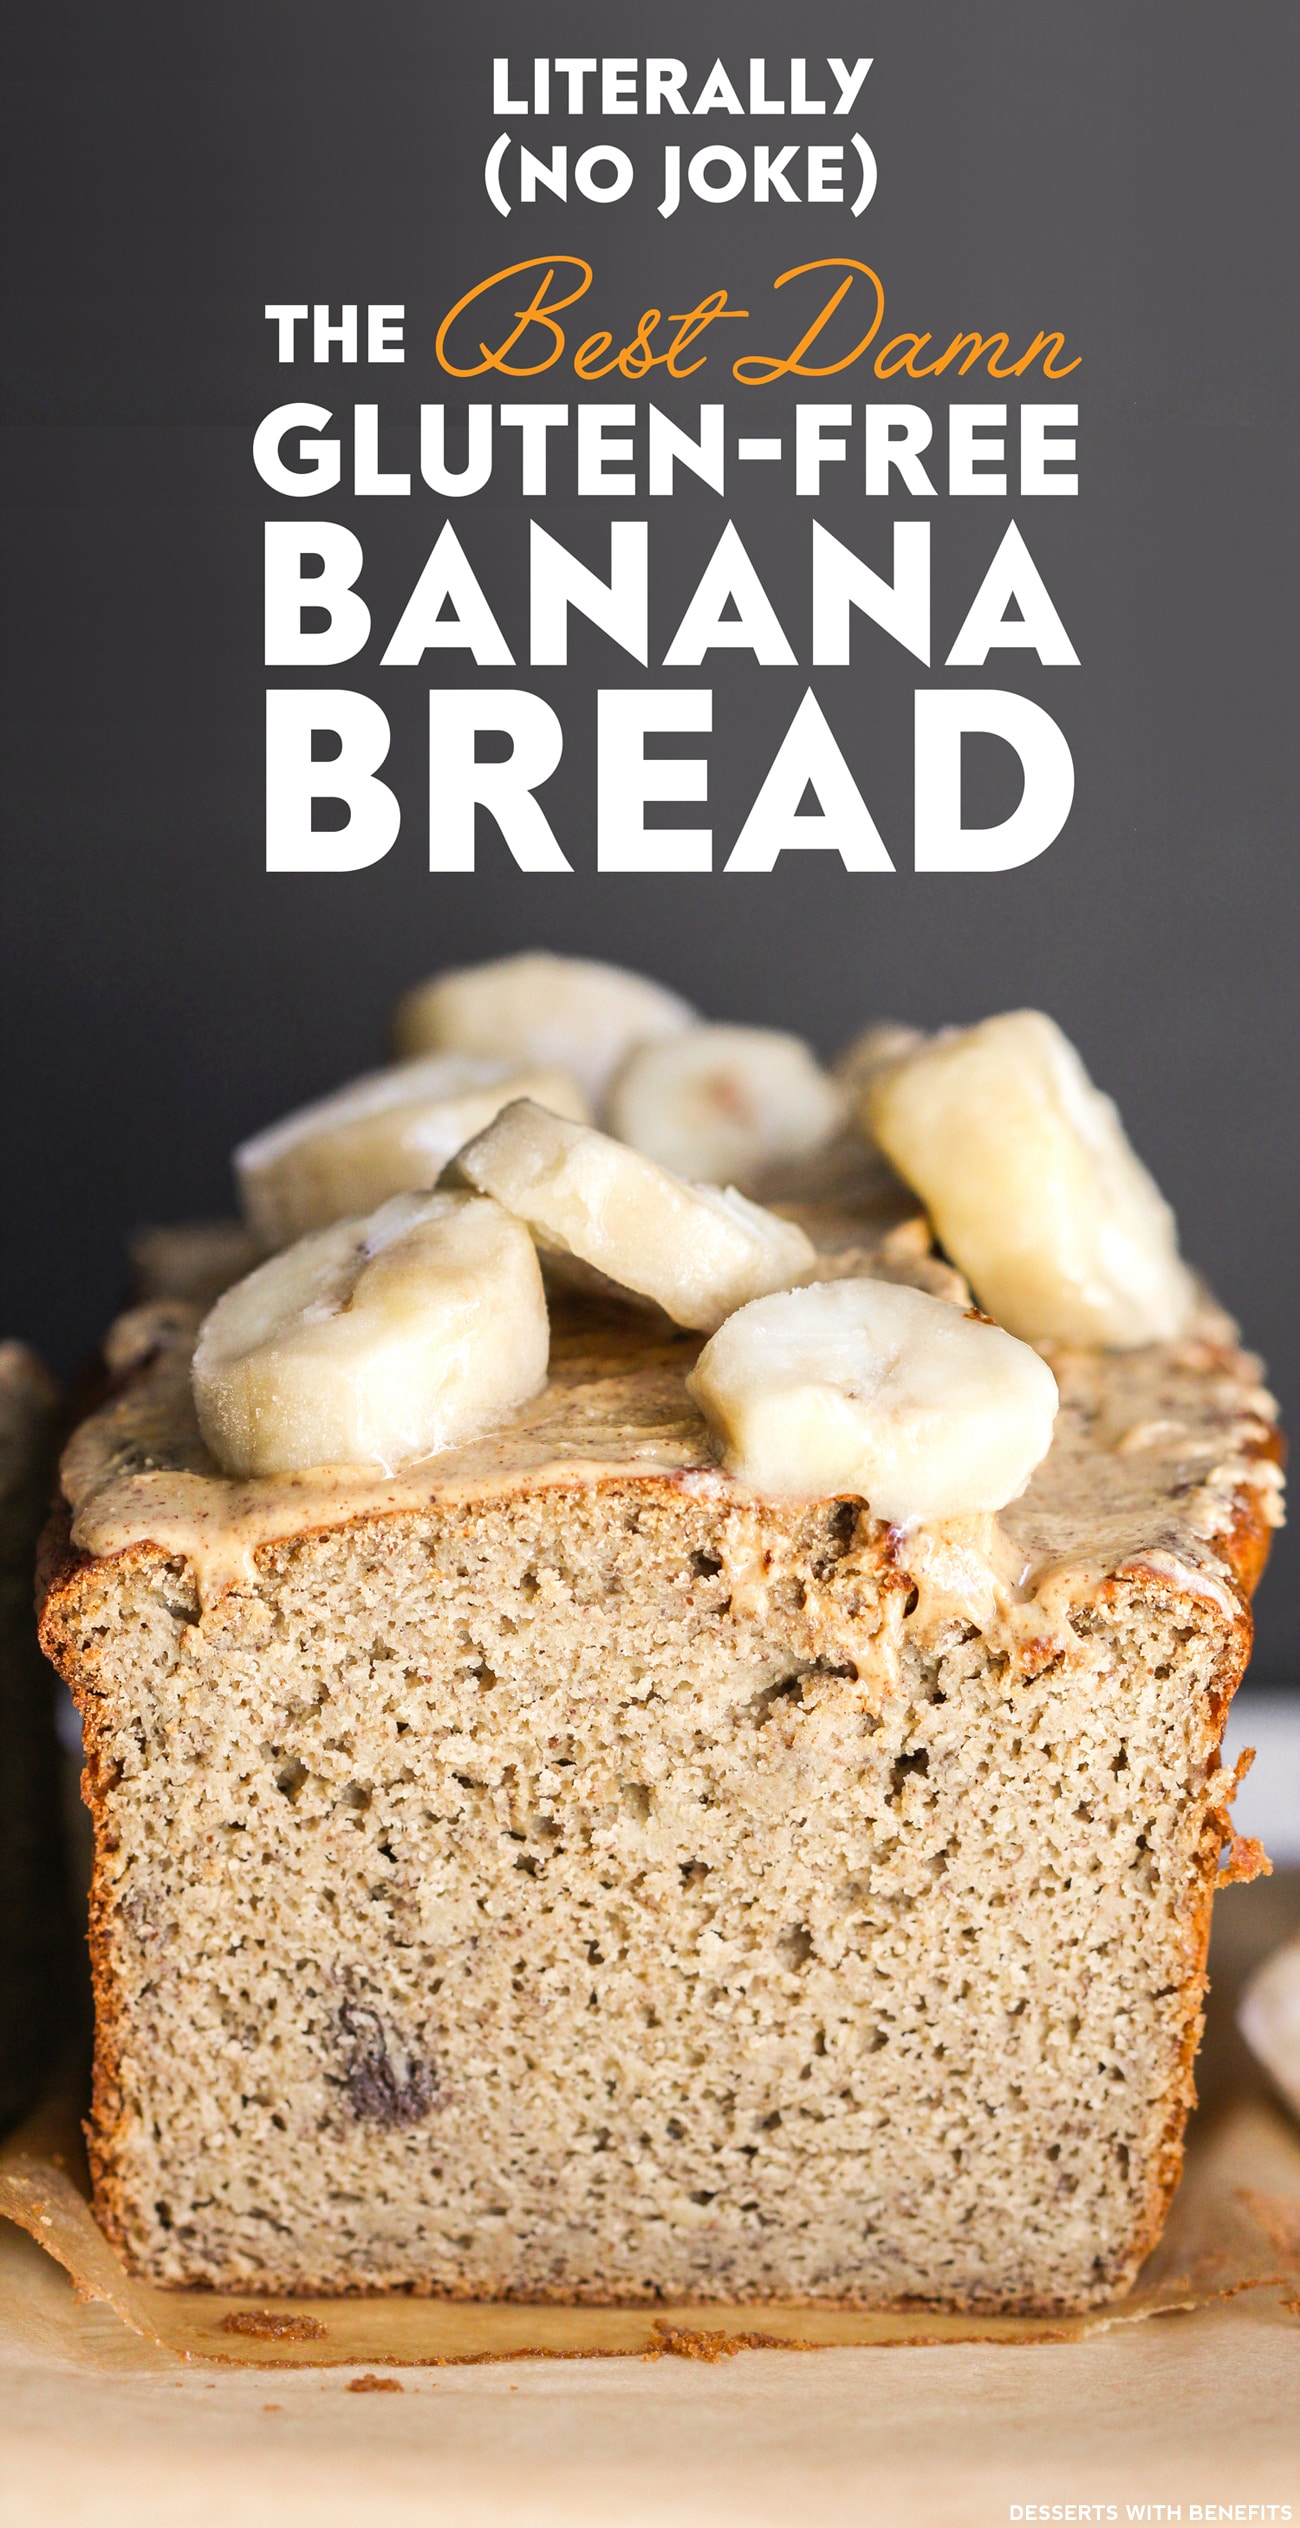 20 Healthy Desserts You Can Eat For Breakfast: 16) Healthy Banana Bread (refined sugar free, high protein, high fiber, gluten free, dairy free) - Healthy Dessert Recipes at Desserts with Benefits